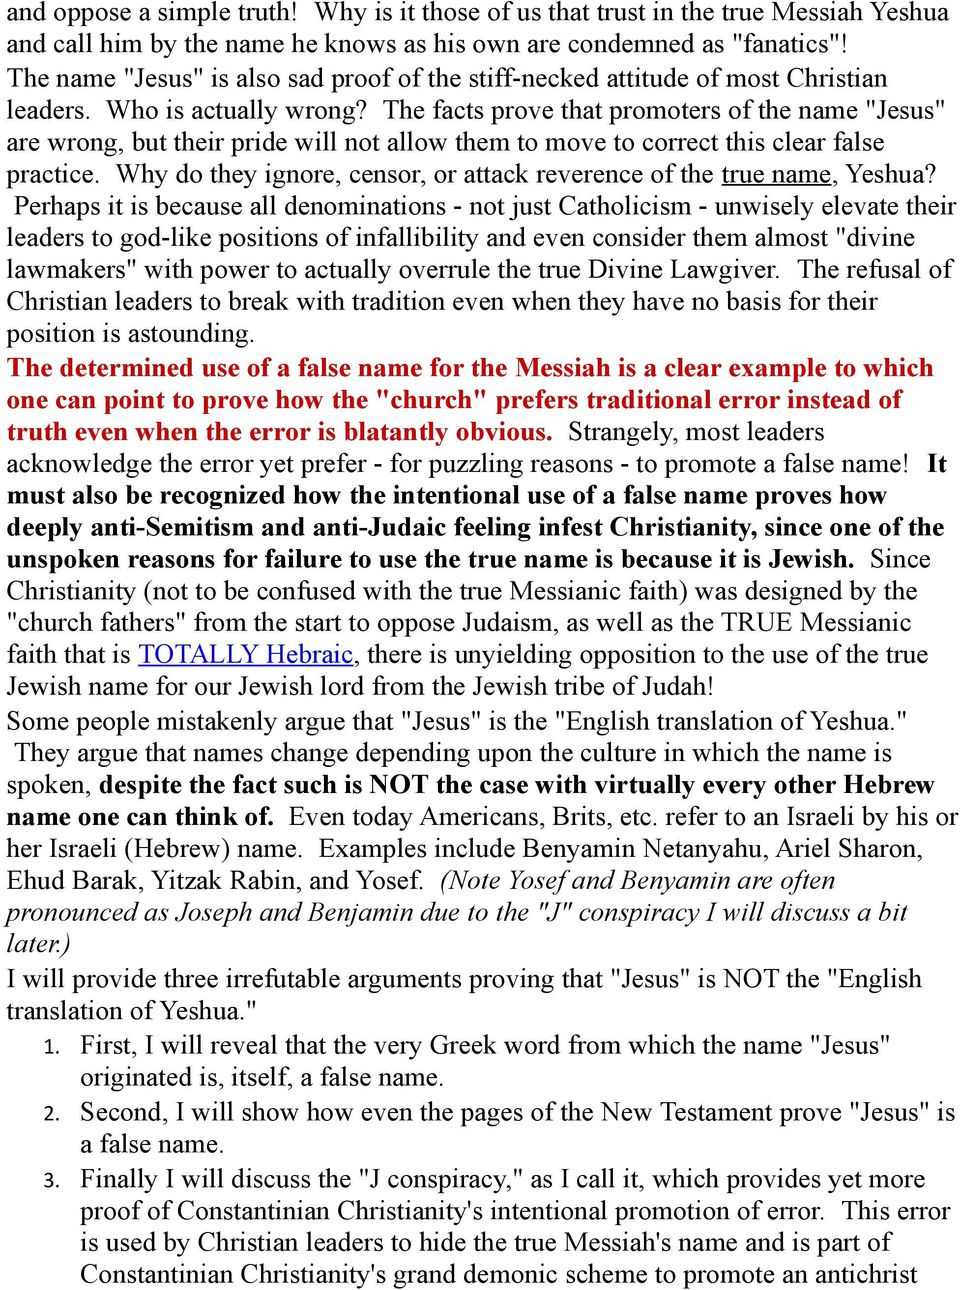 Yeshua or Jesus? The Mis-Transliteration of a Greek Mis